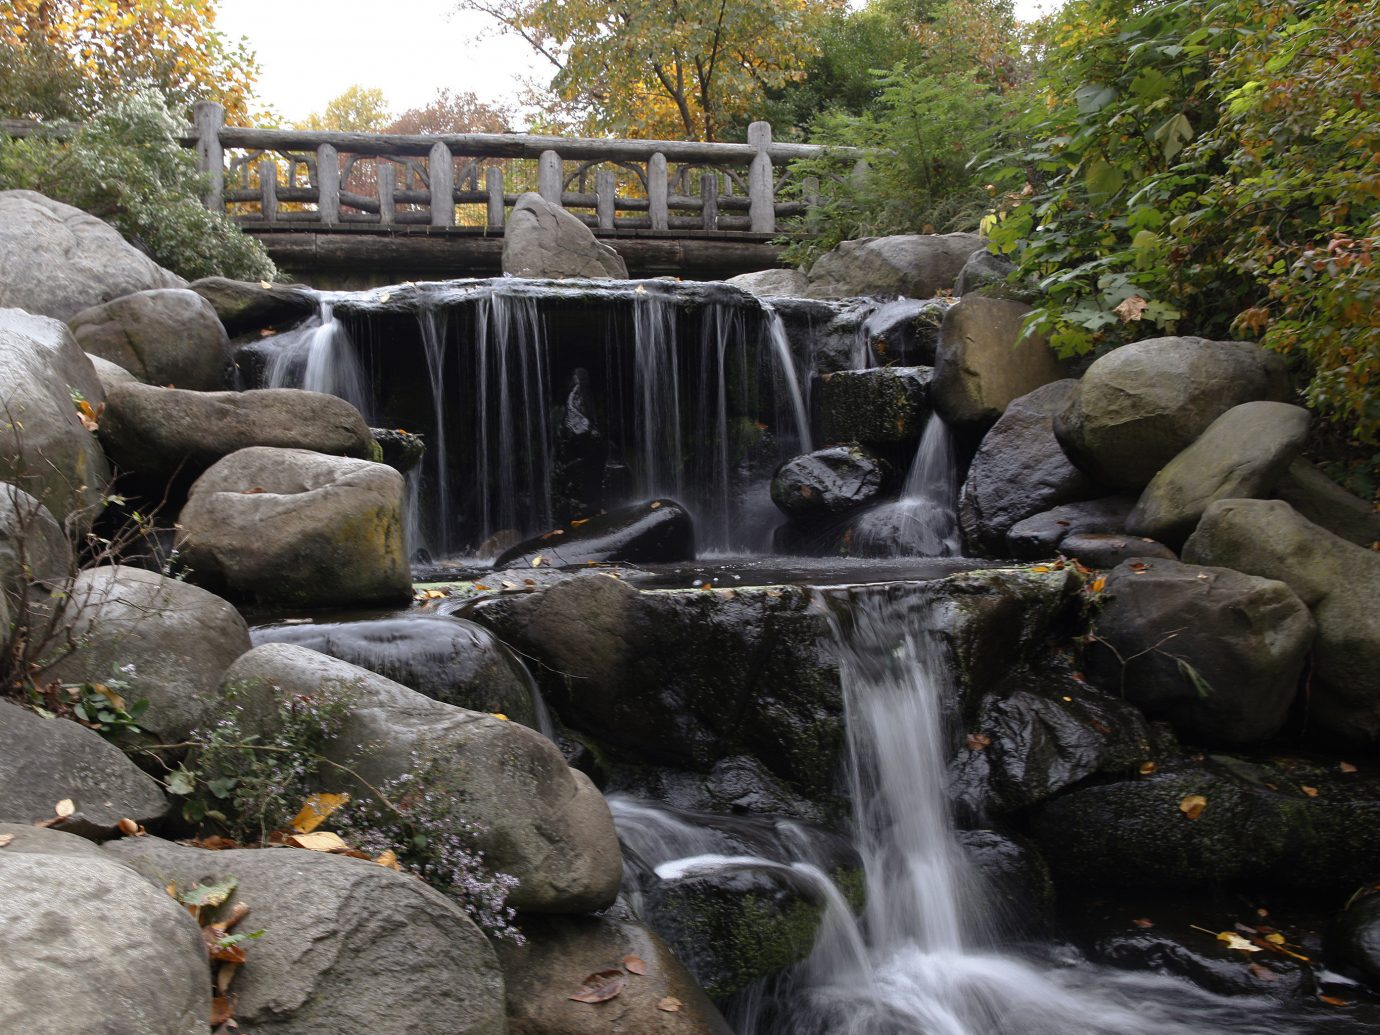 Budget Nature outdoor tree rock Waterfall water body of water watercourse stream water feature botany River pond autumn Garden backyard rapid